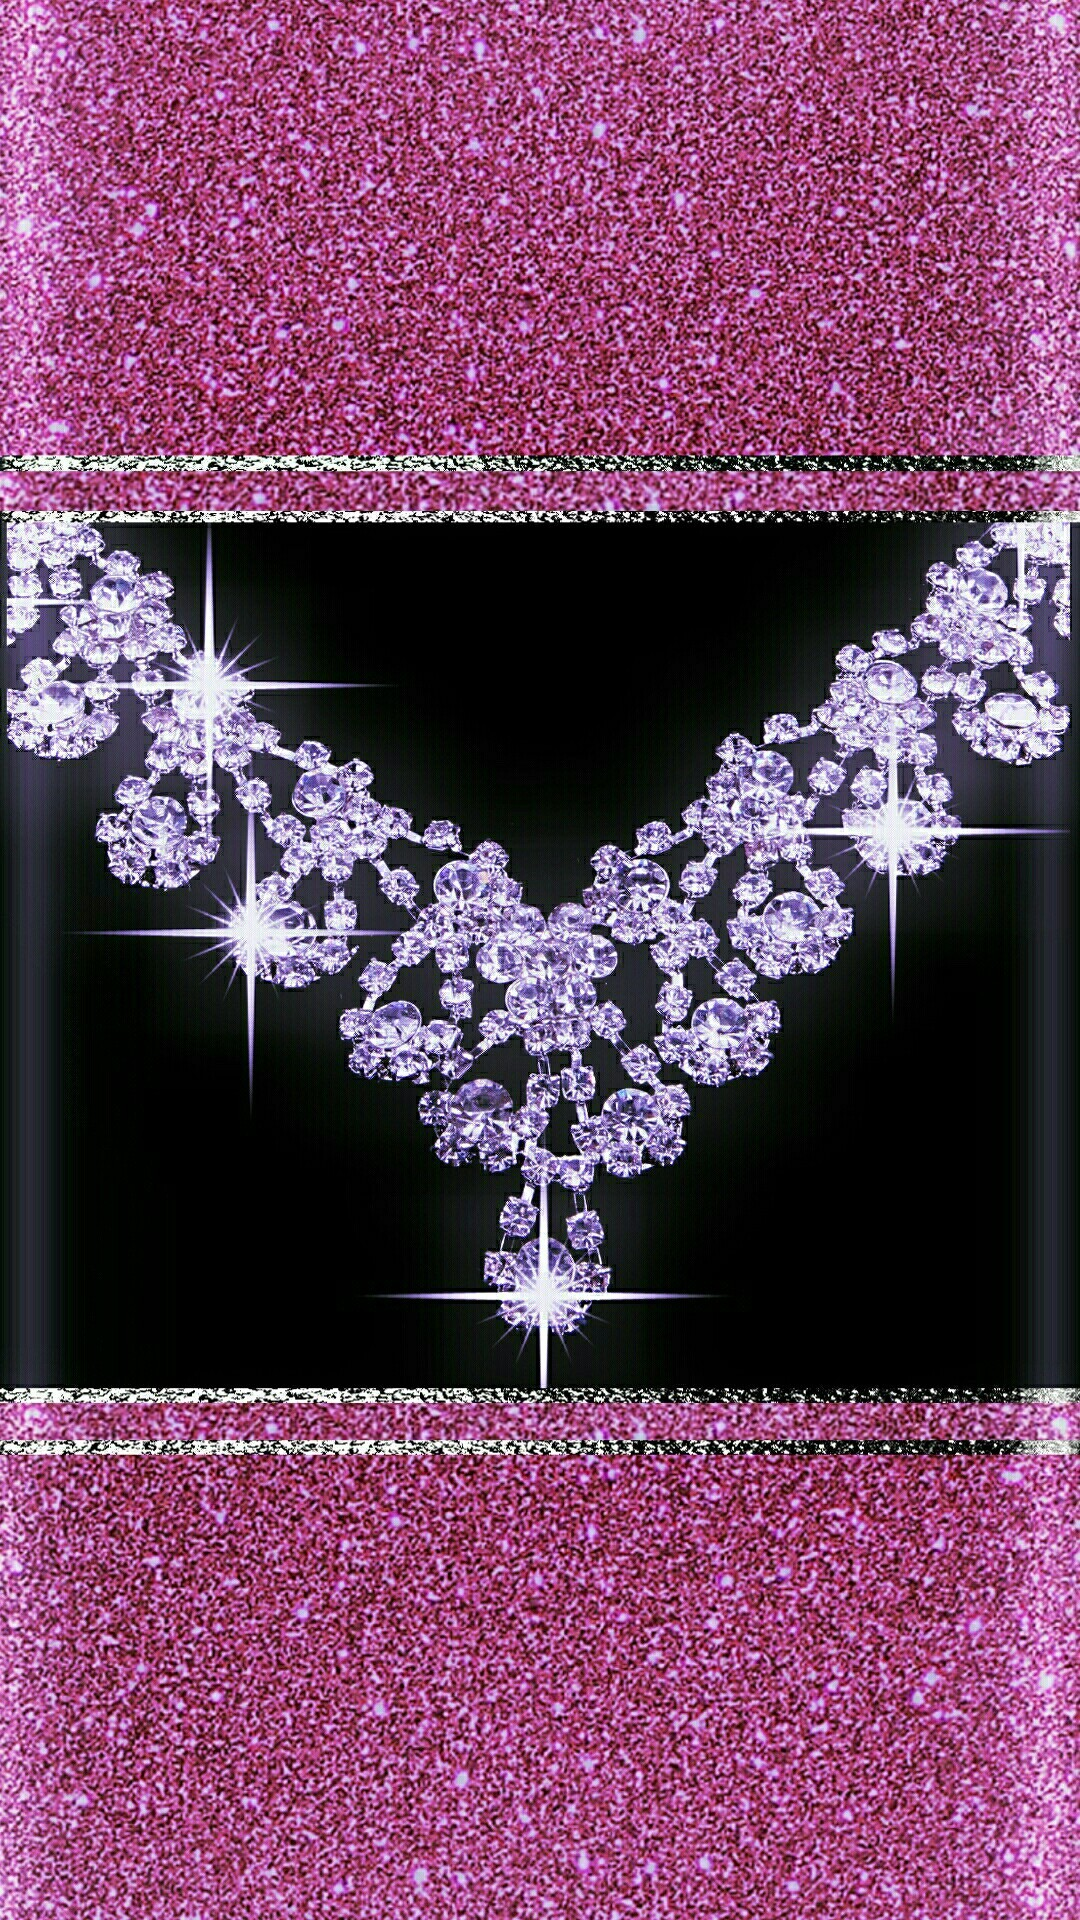 Heart Wallpaper Abstract 3D 1080x1920 Black And Pink Diamonds